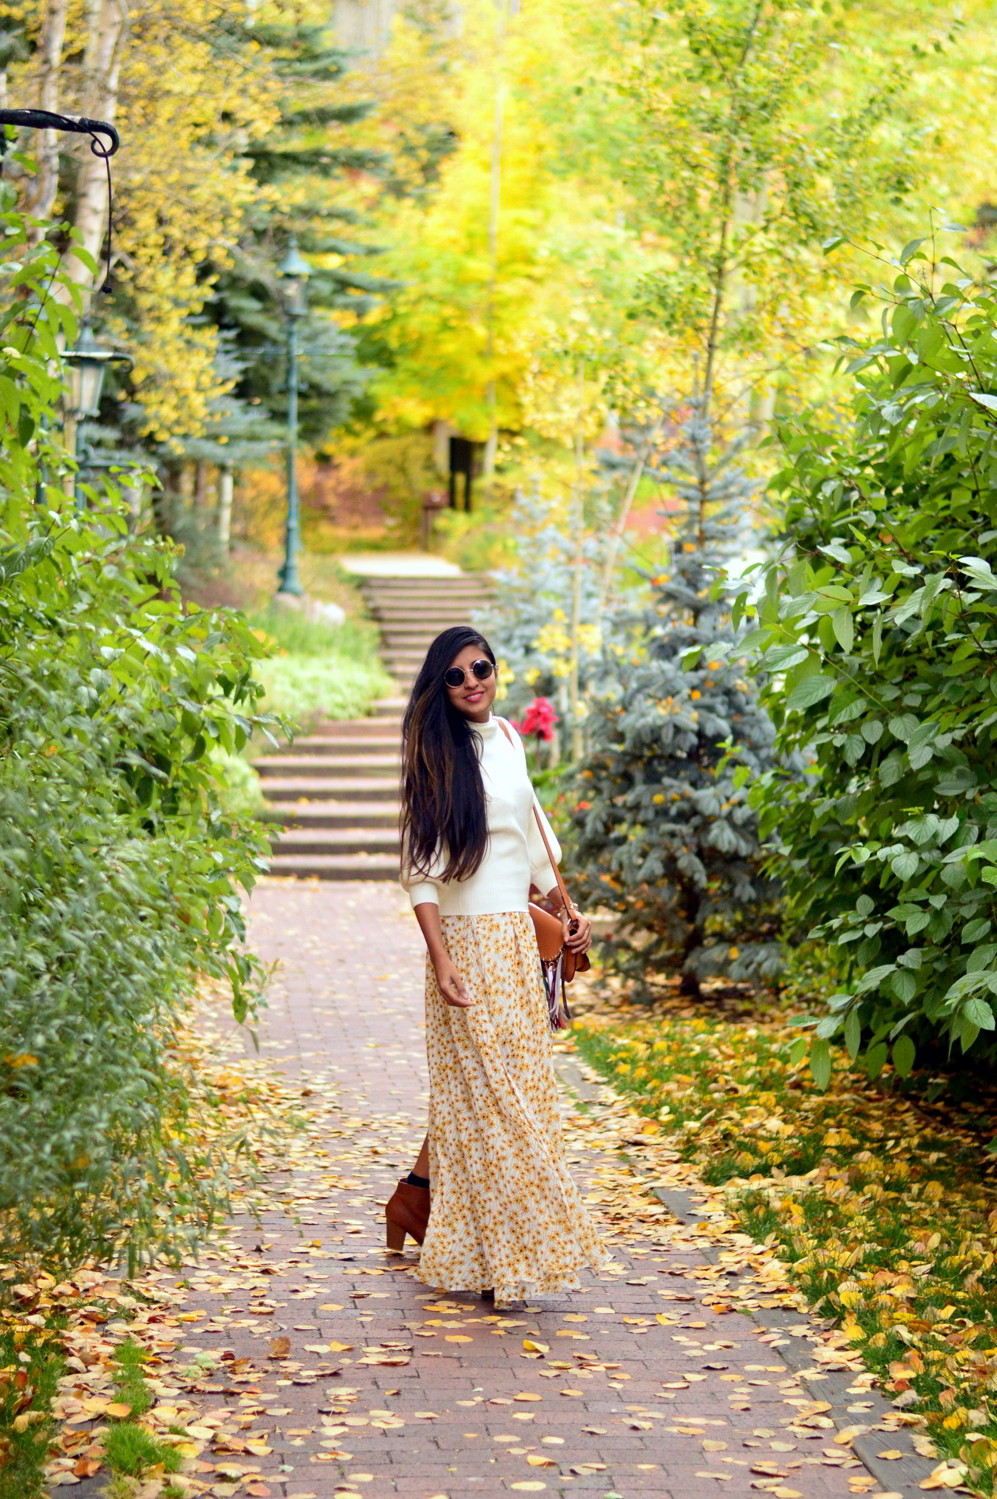 turtleneck-sweater-floral-maxi-dress-fall-layers-style-blogger-travel-Vail-Colorado 8